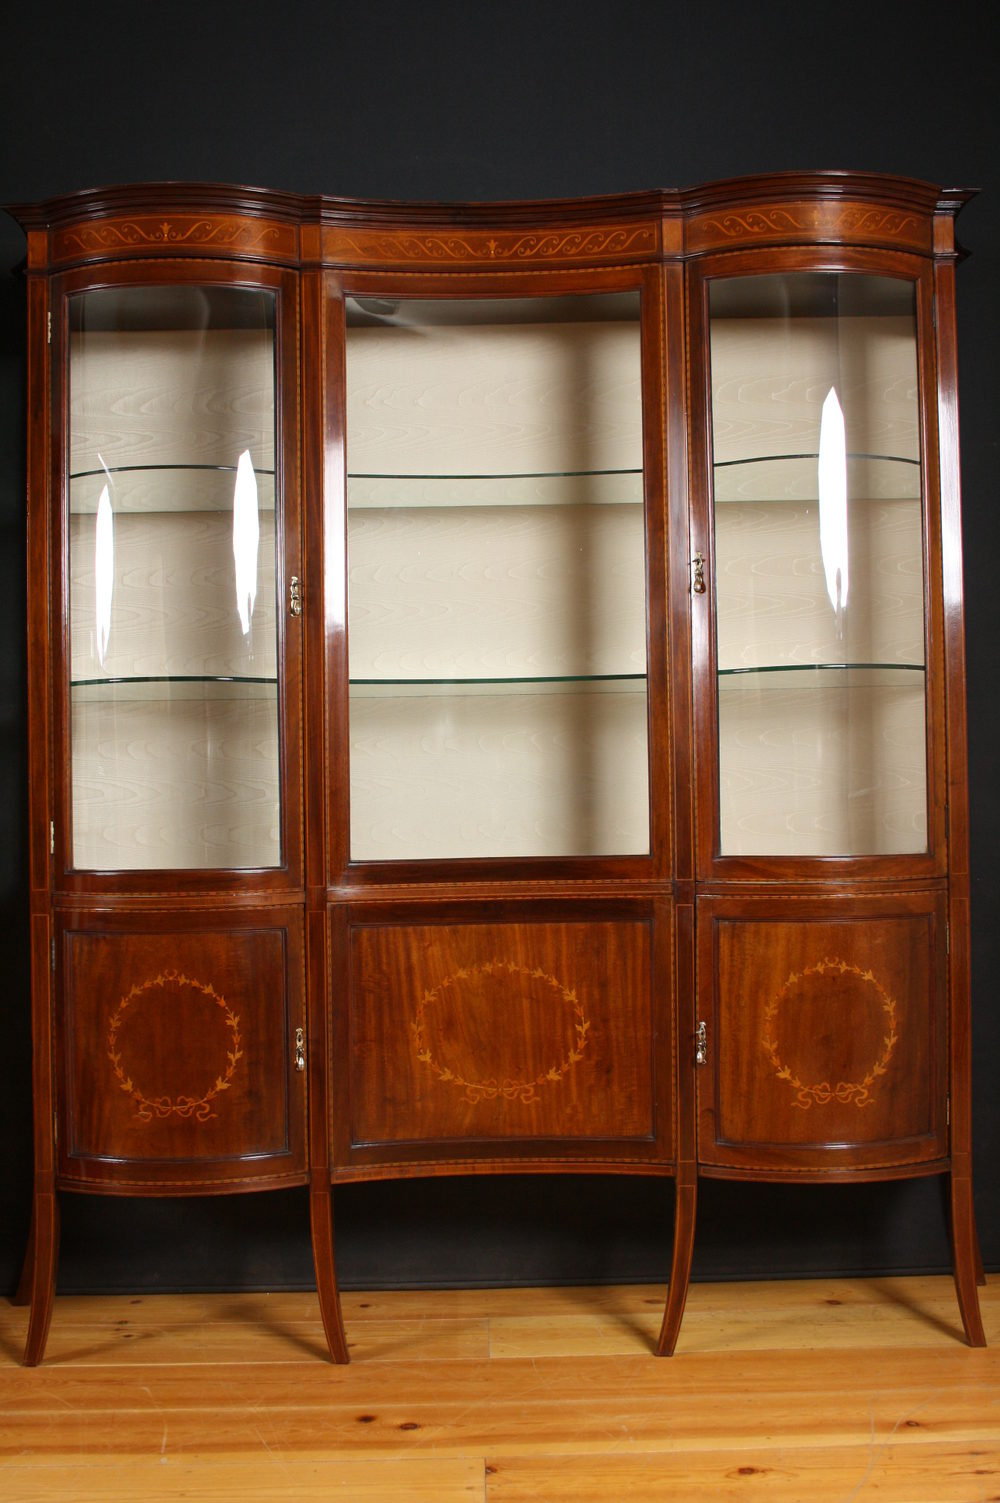 Edwardian Display Cabinet - China Cabinet